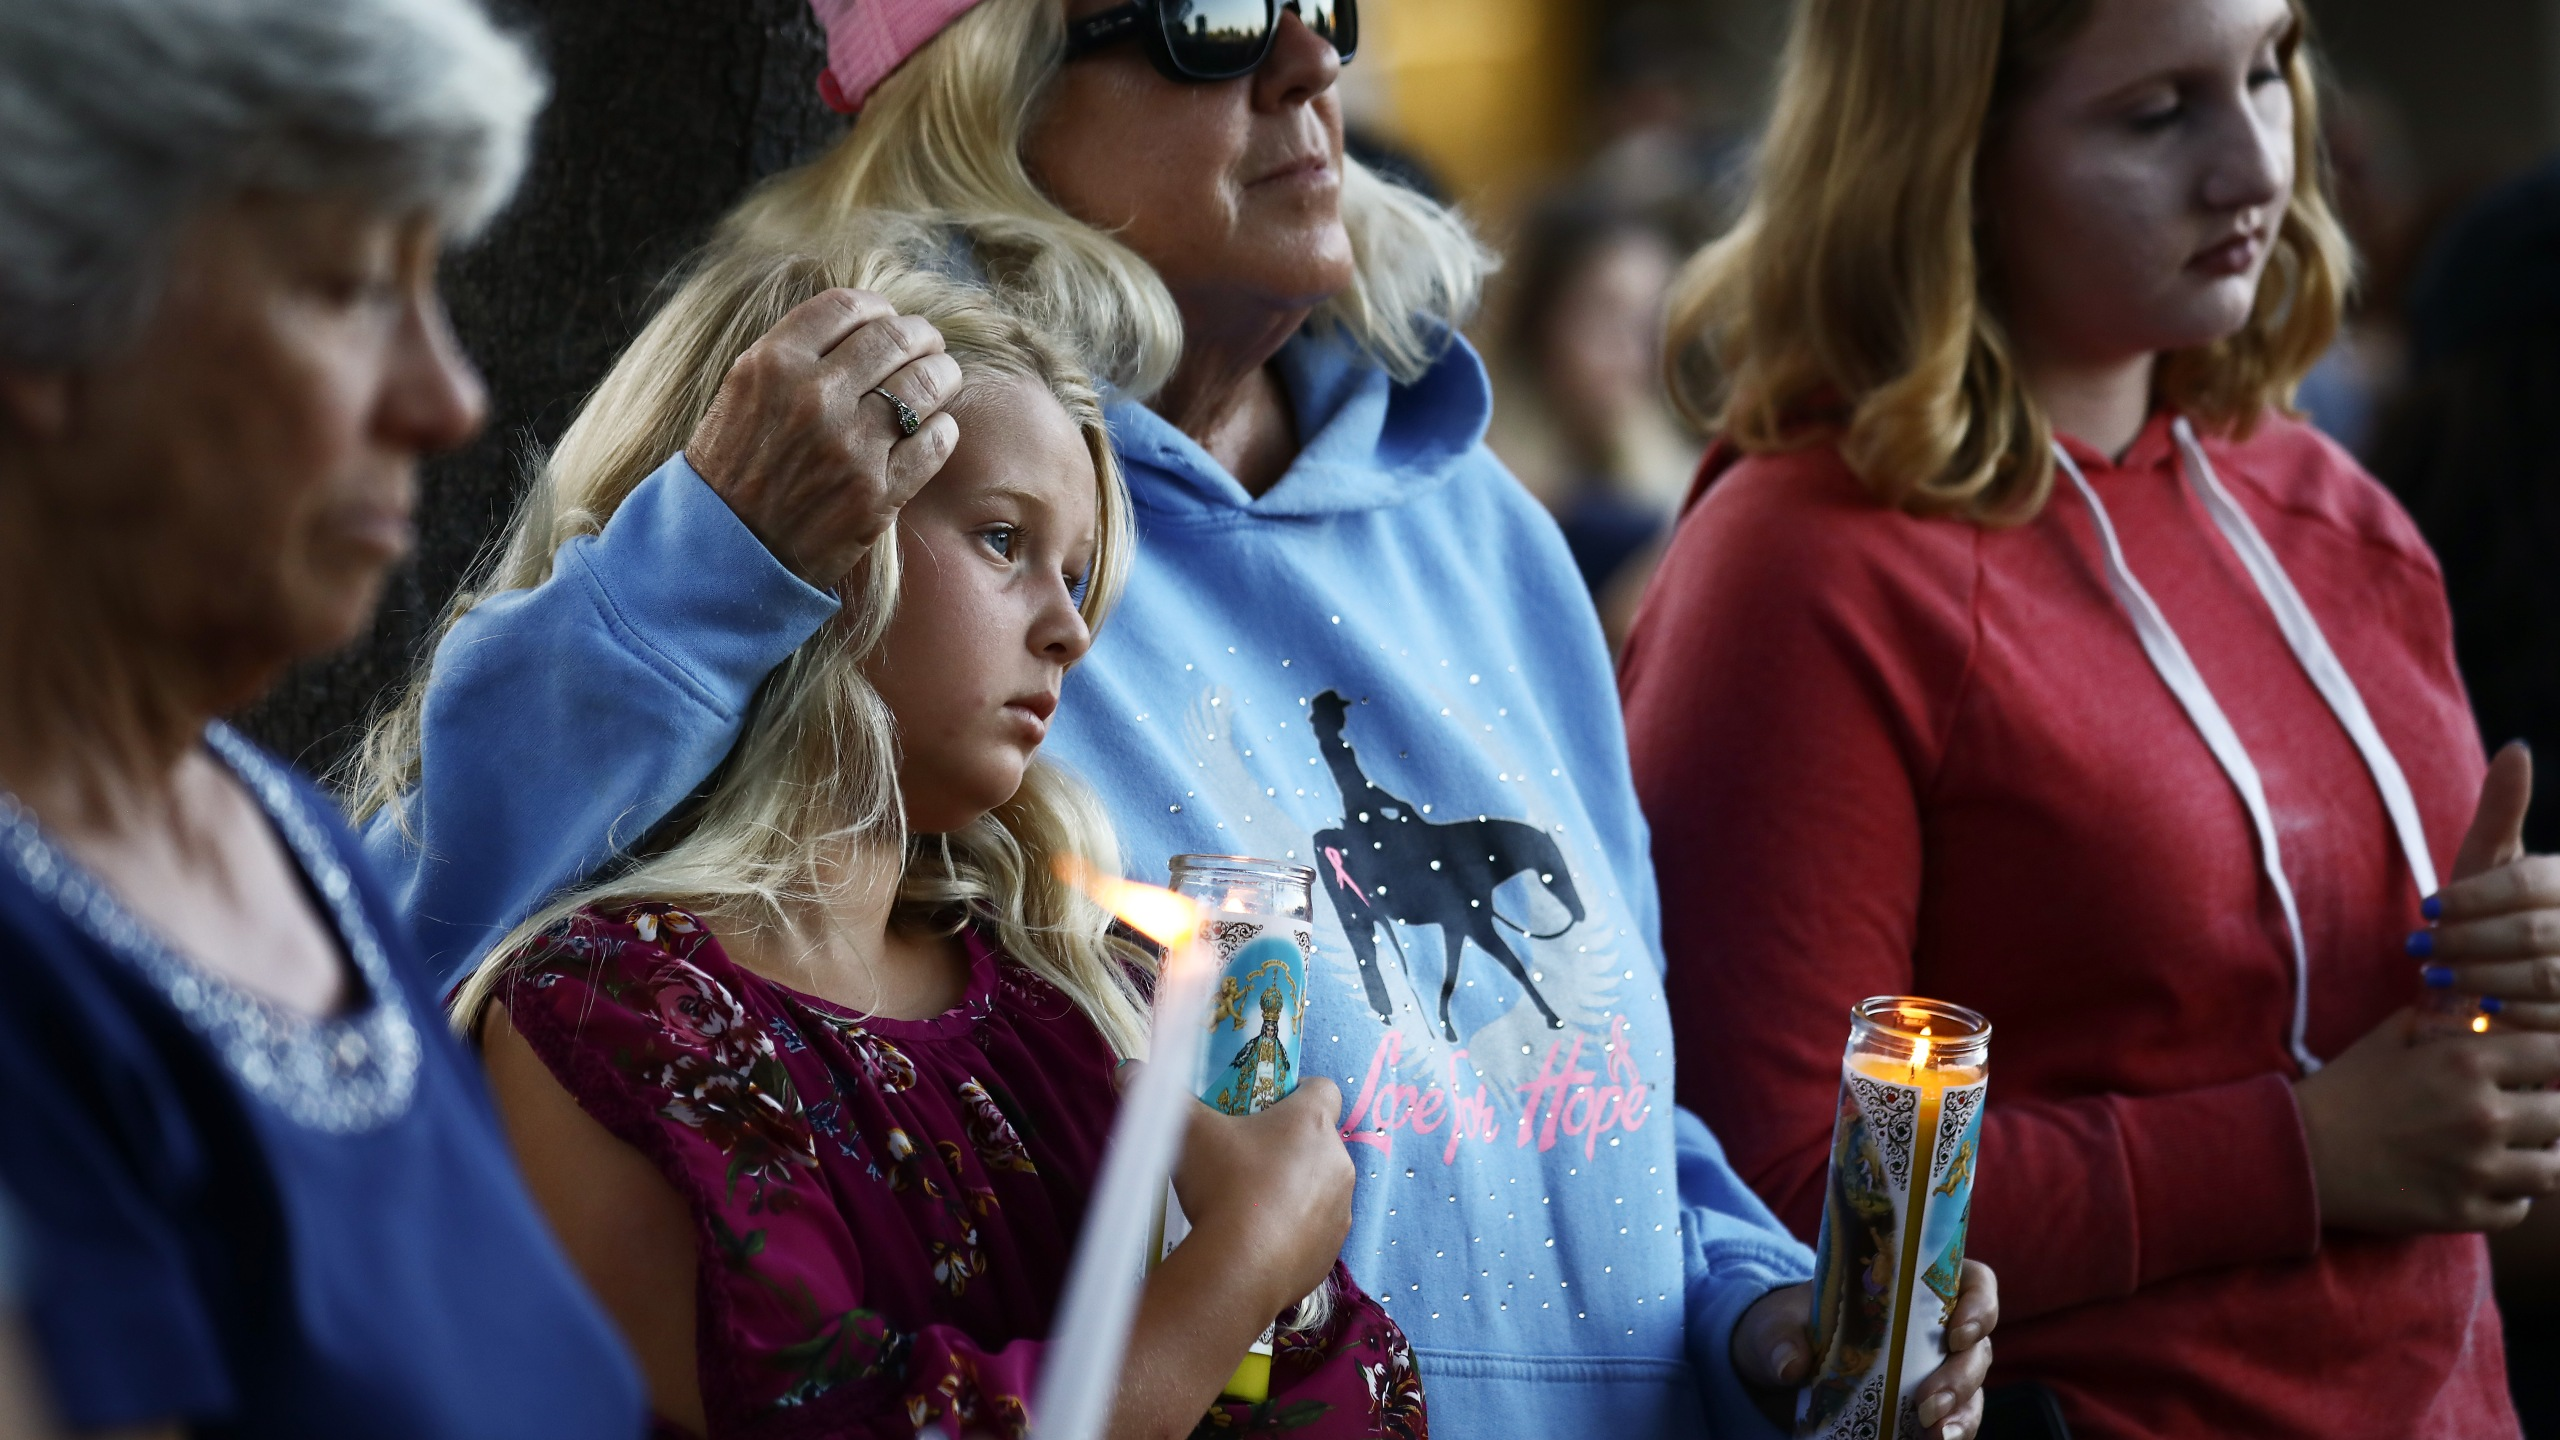 People attend a vigil in Gilroy for victims of the mass shooting at the garlic festival, July 29, 2019. (Credit: Mario Tama / Getty Images)